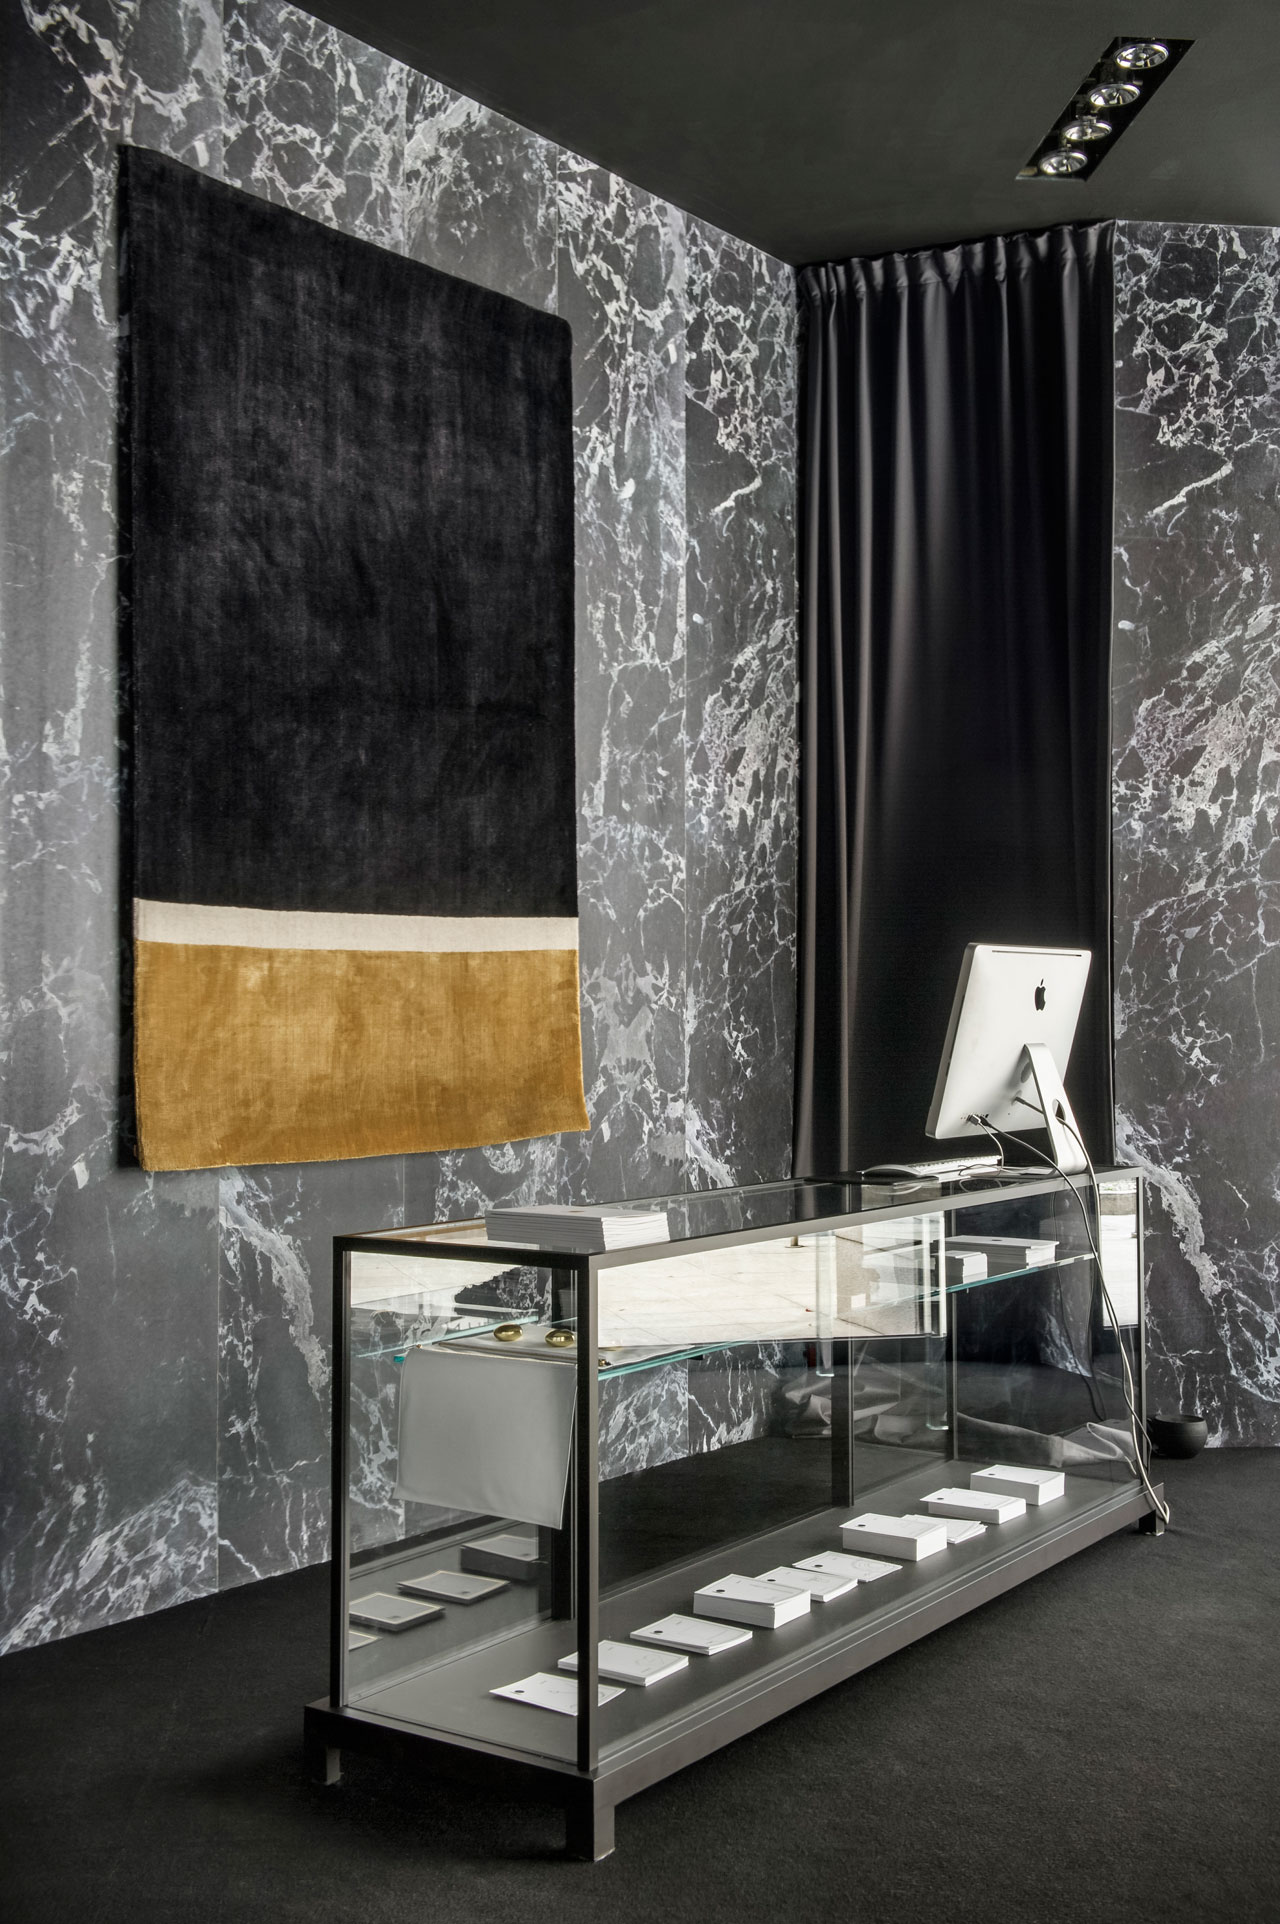 10 by Yatzer installation view at Spazio Pontaccio, Milan 2016. Wunderkammer Low Display Case by Piero Lissoni for Glas Italia. Materials Wallpaper in black marble by Piet Hein Eek for NLXL. Styling by Costas Voyatzis, photo by Fabrizio Annibali.